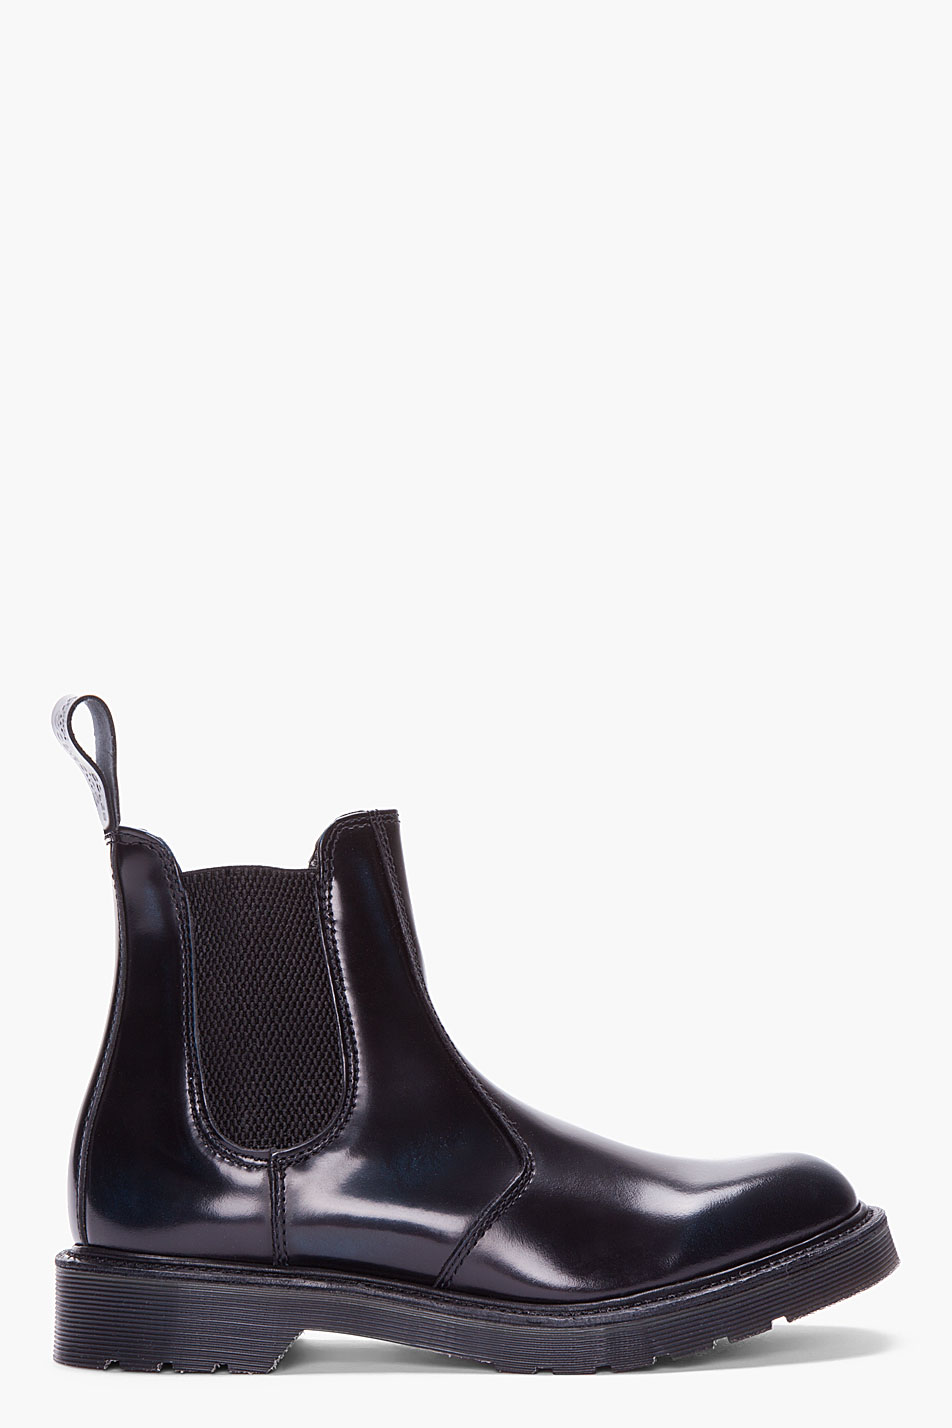 abb560c91e6 Dr. Martens Black Patent Leather Chelsea Boots for men